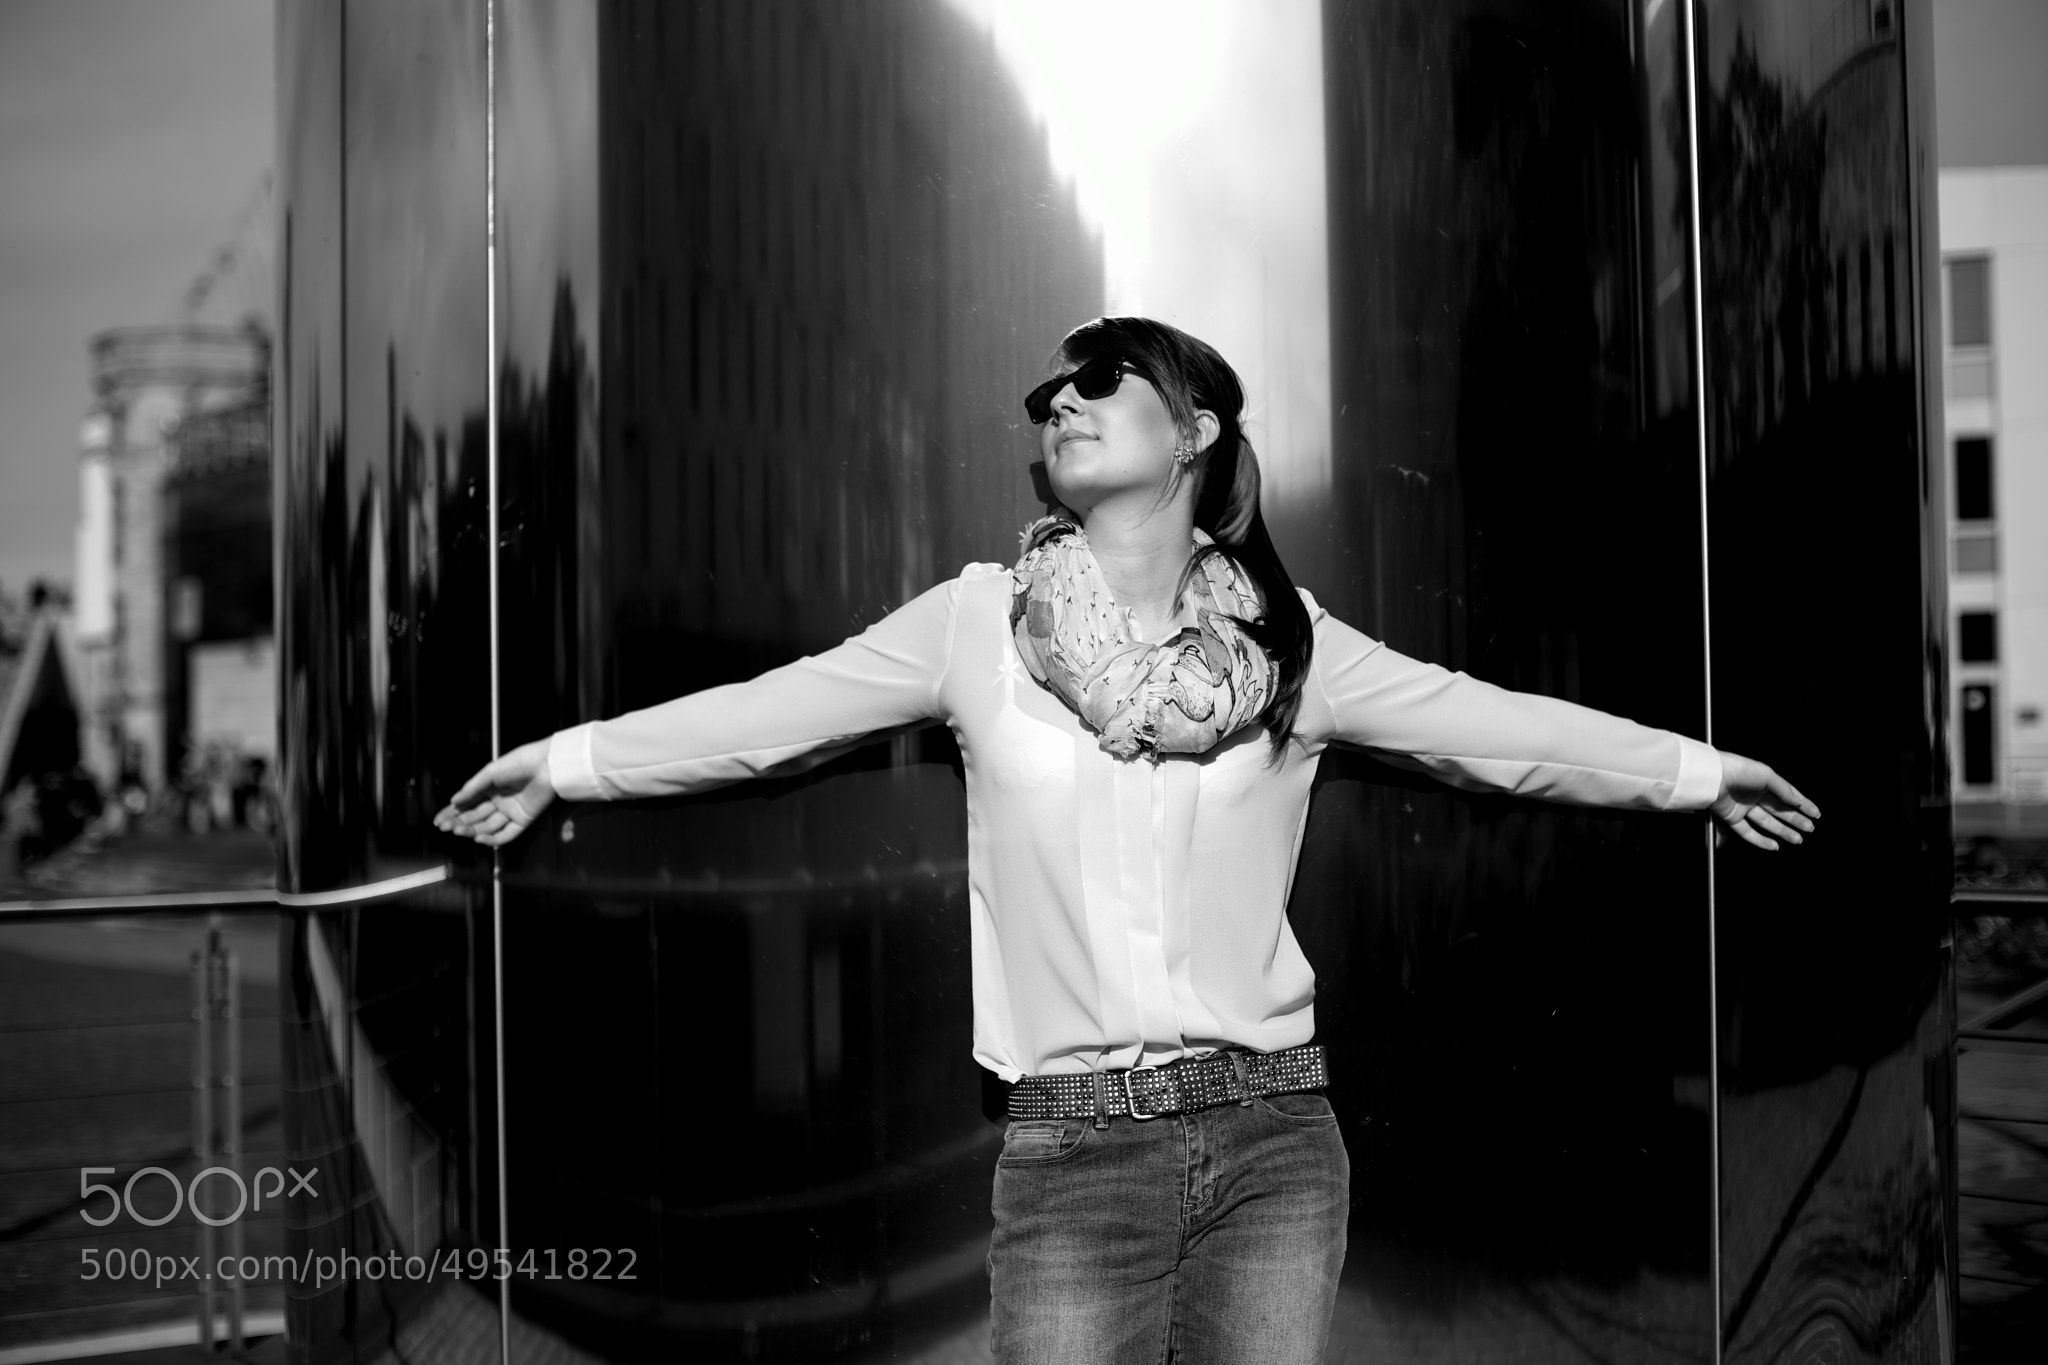 Photograph Freedom by theonlyheinrich on 500px